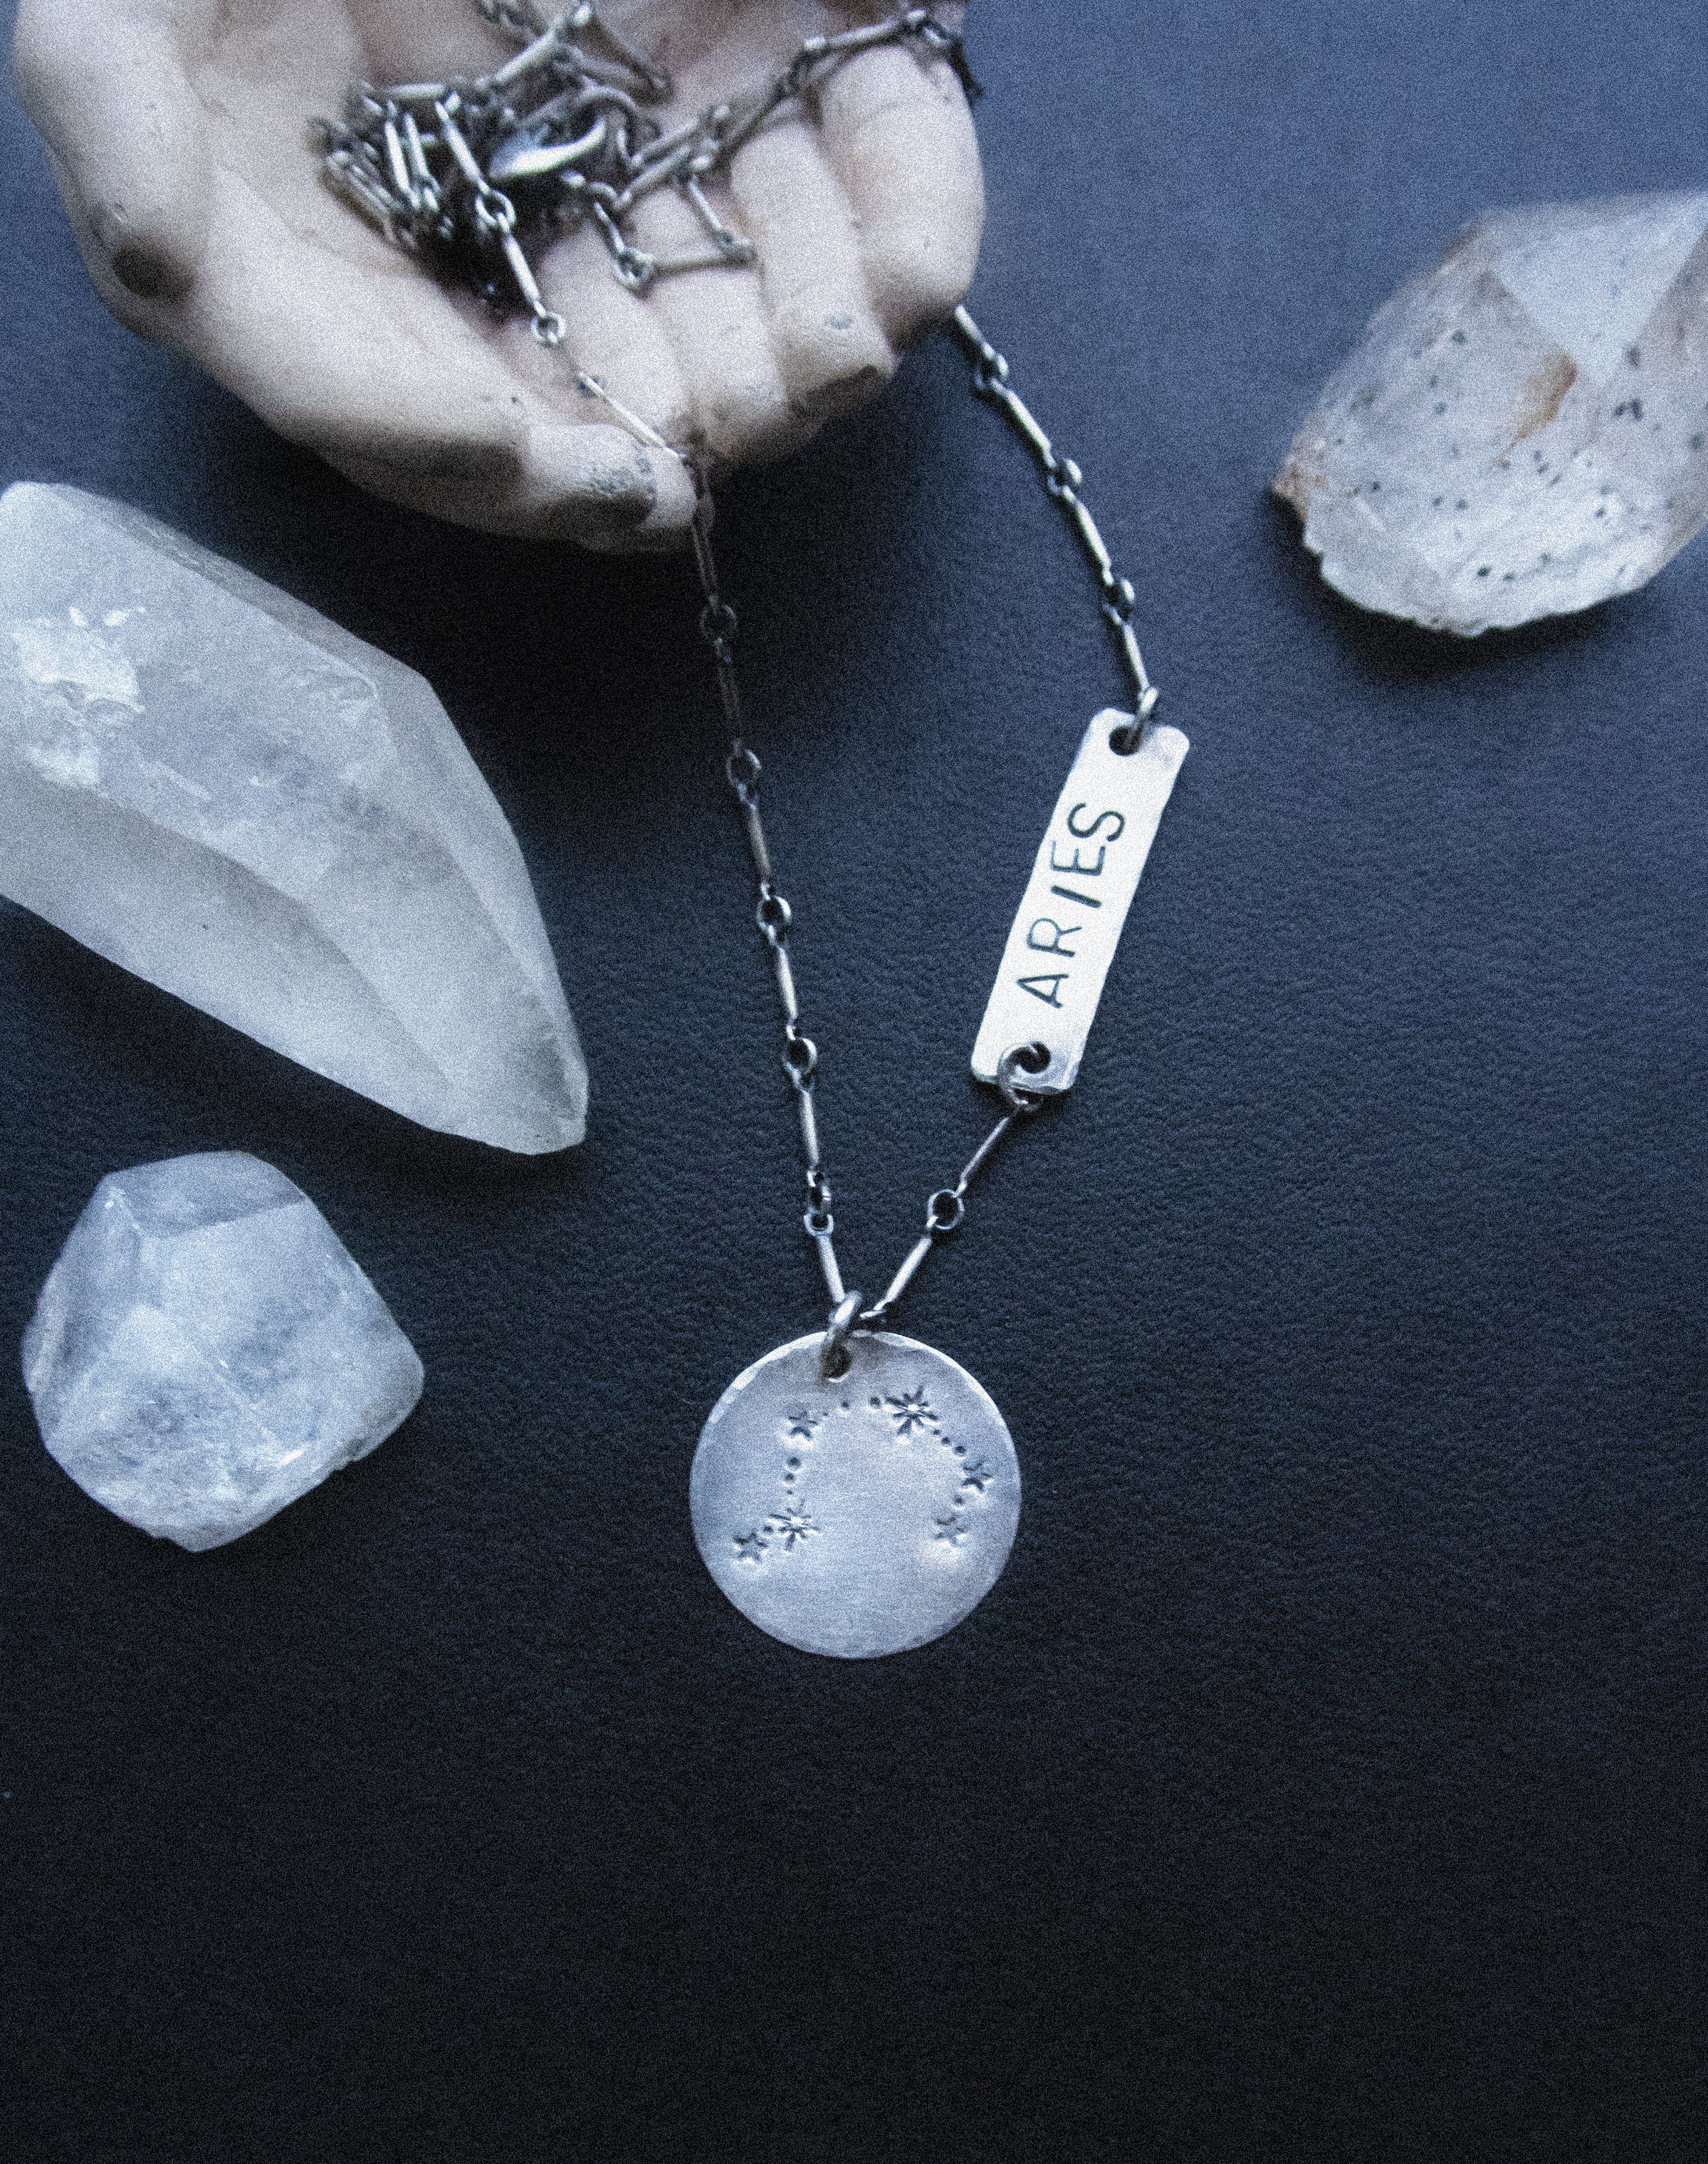 - In this class you will take home your own sterling silver necklace made by you! You will also get a stamping block and a stamp to keep so that you can start building your home studio.